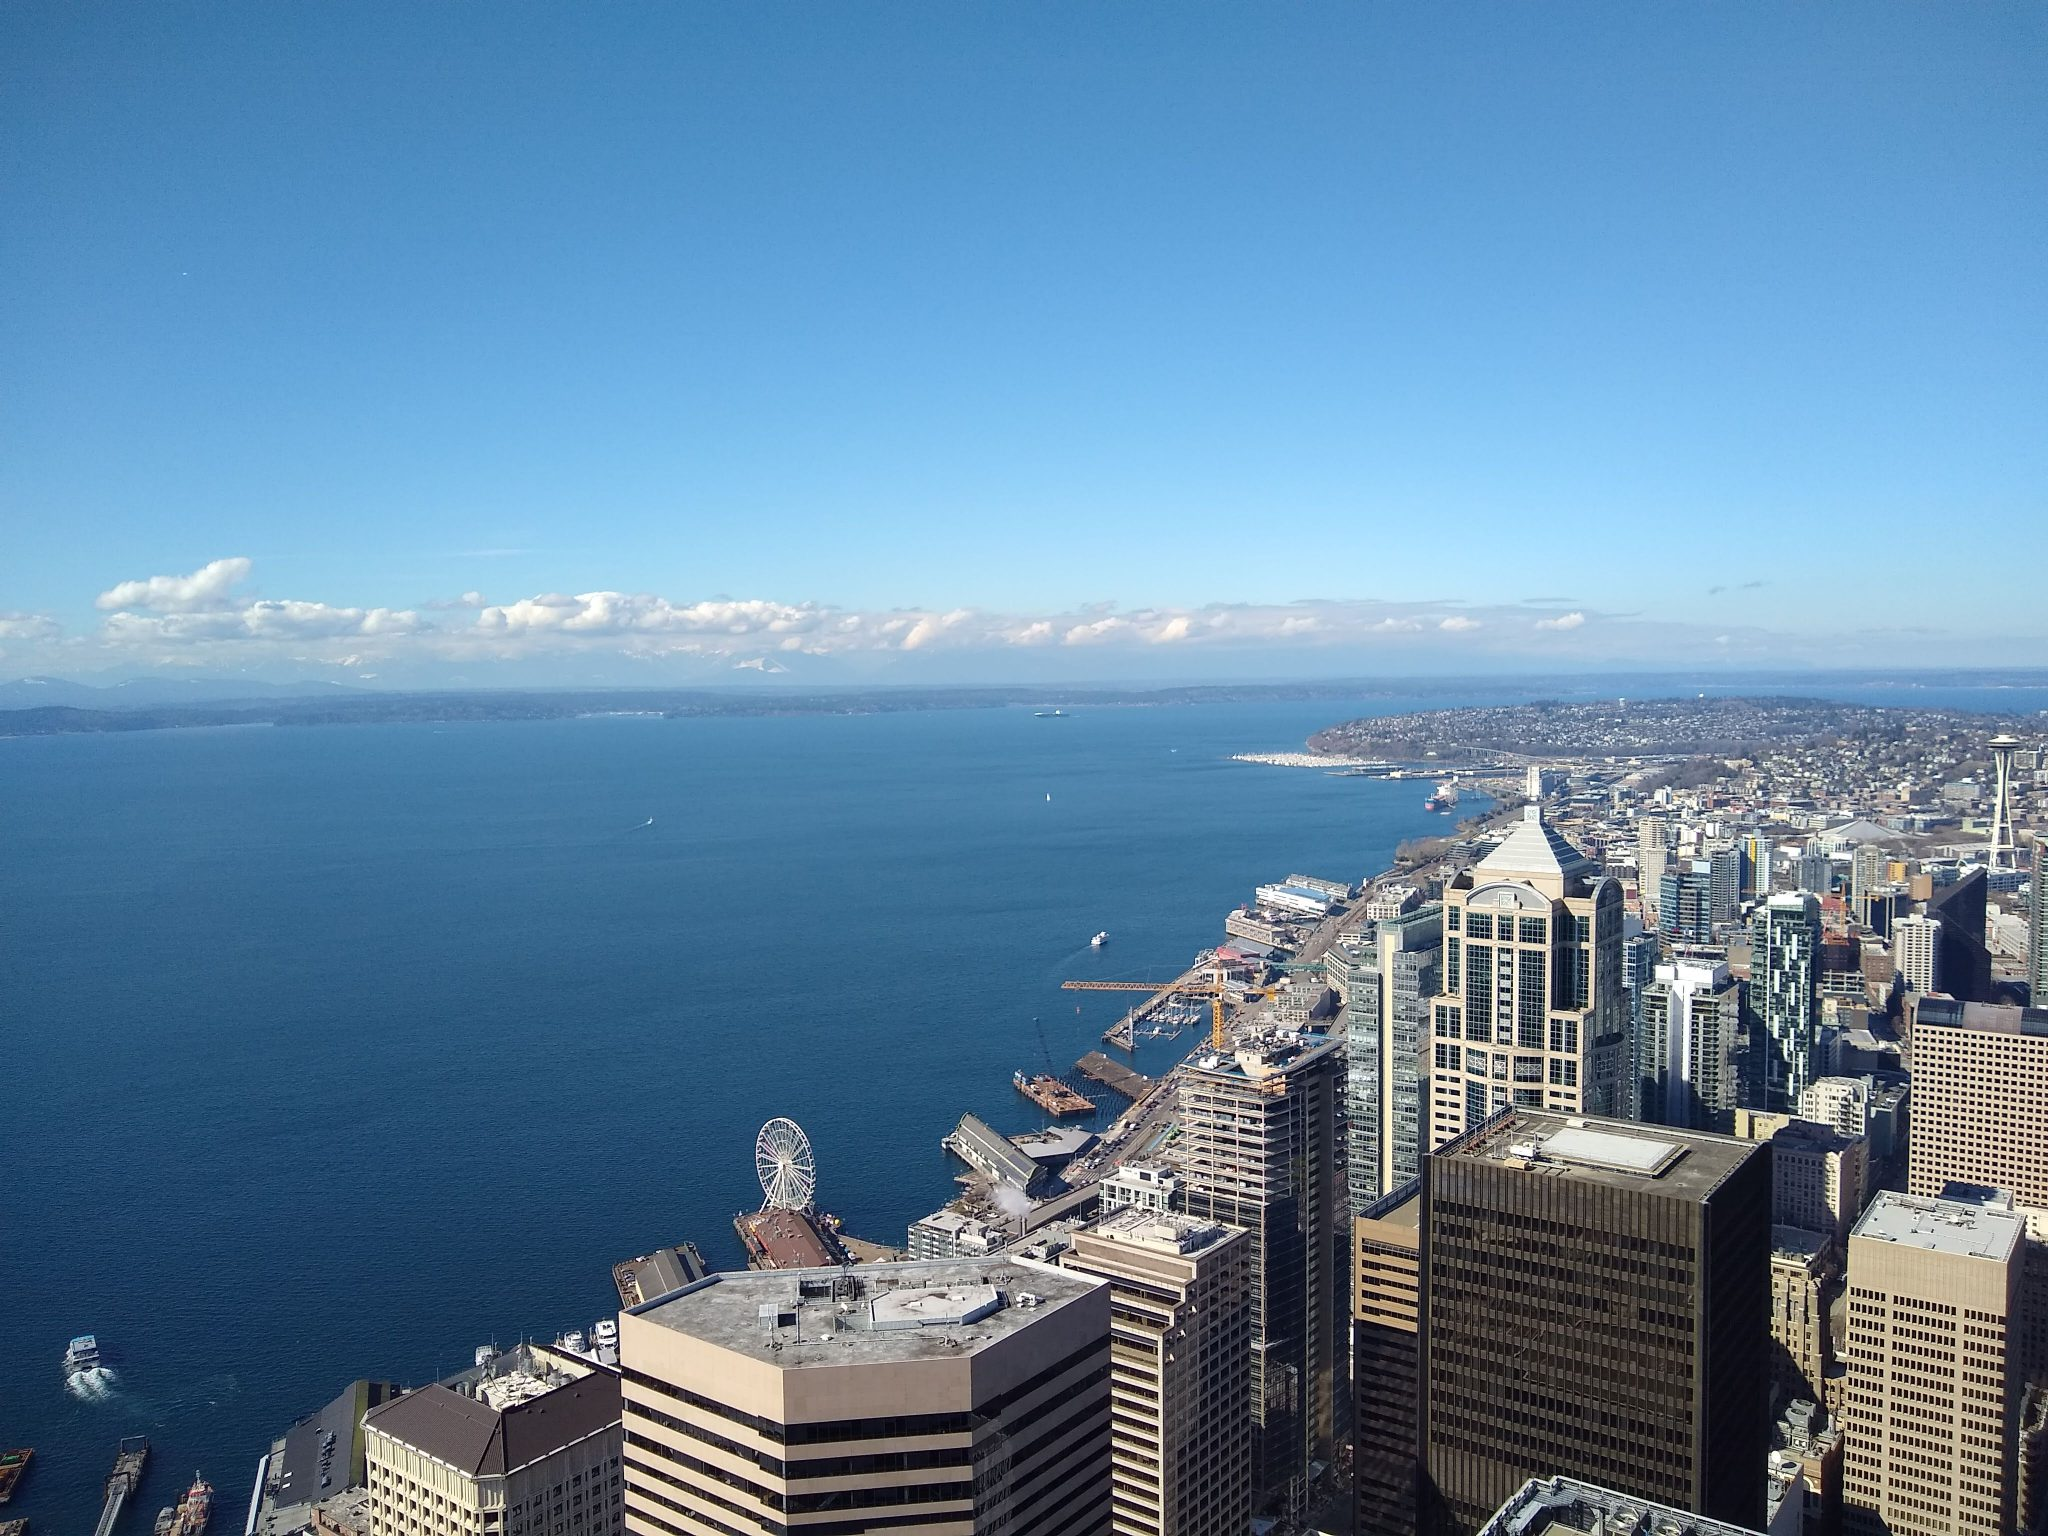 A city seen from high above. There is blue water, blue sky and some clouds above high rise buildings and a waterfront